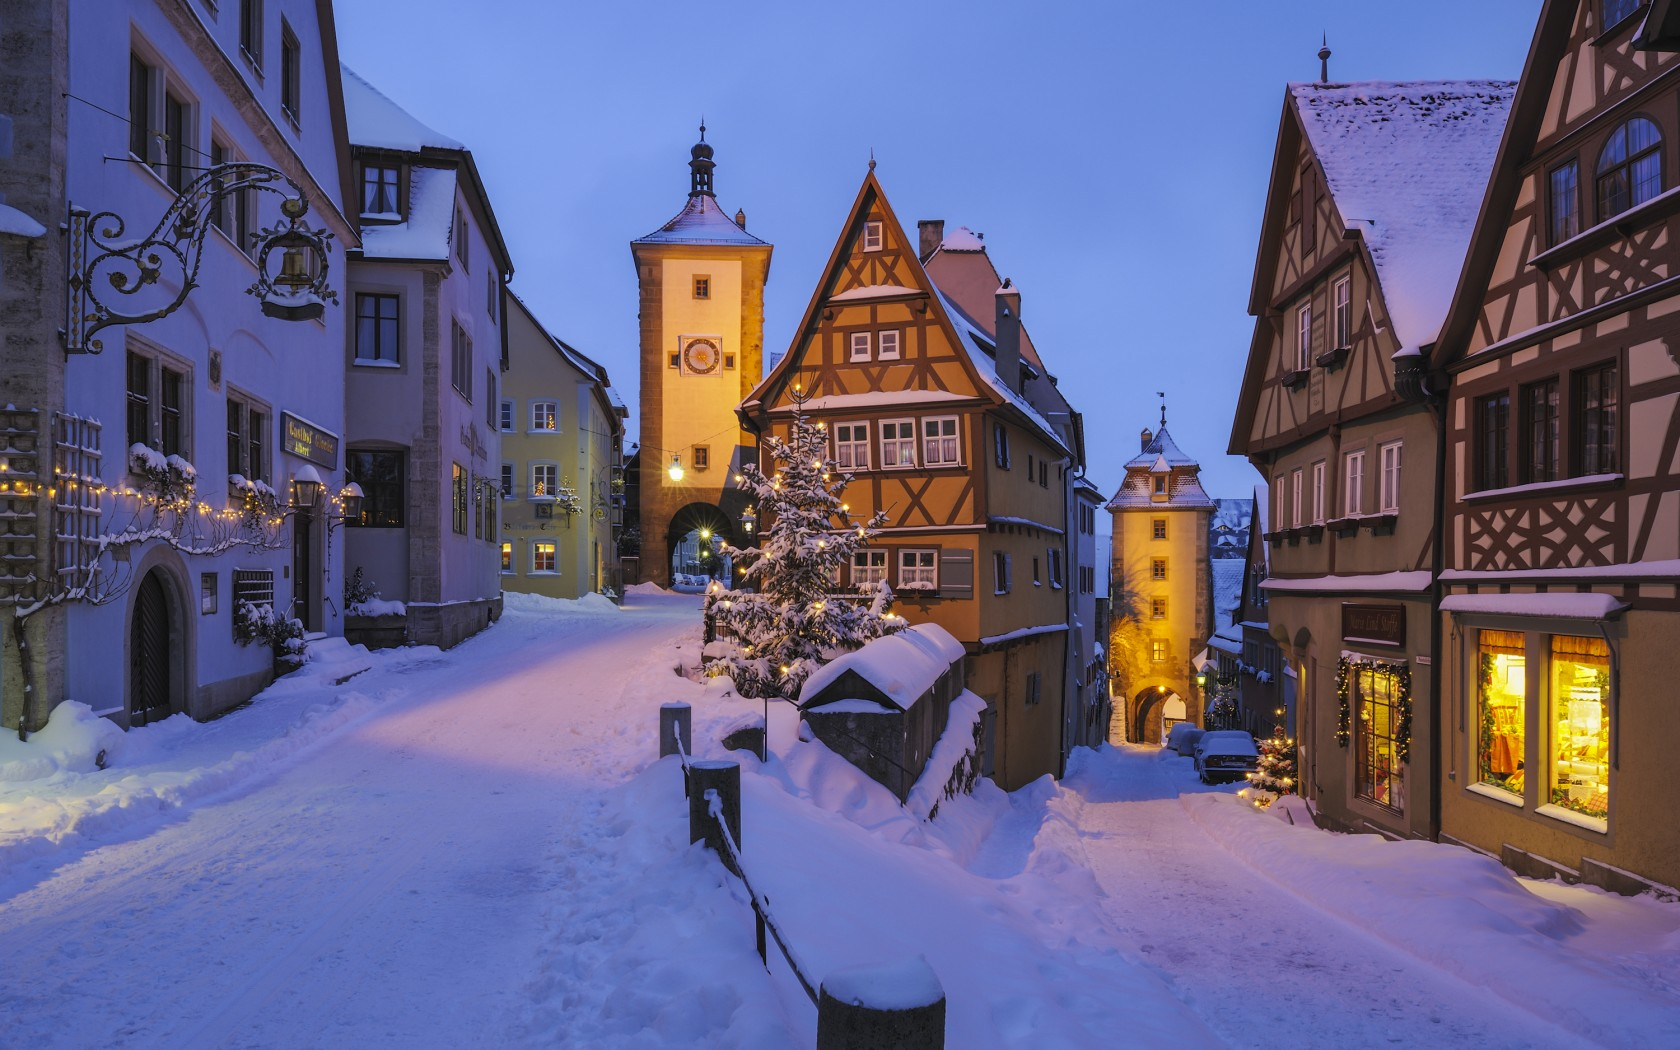 Rothenburg my travel expert and shoalhaven solo sisters - Rothenburg ob der tauber alemania ...